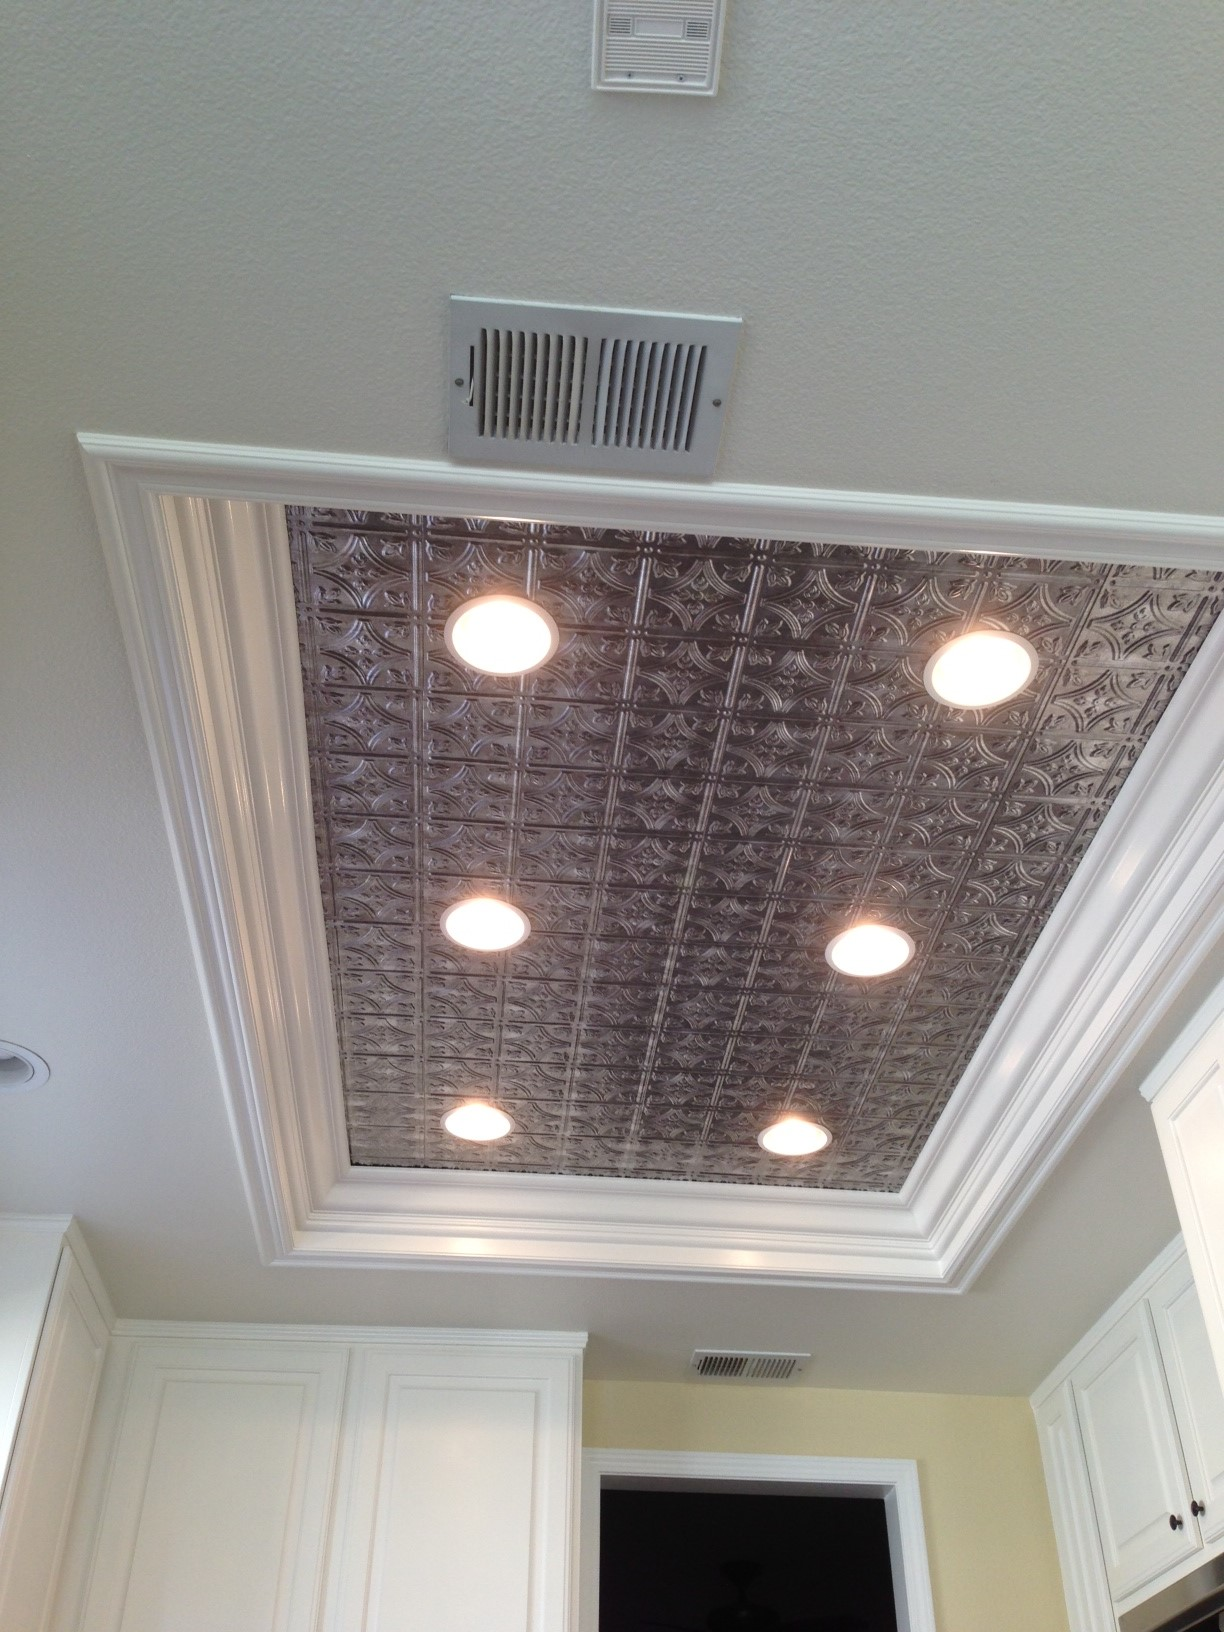 Ceiling Light Box Loose : Spice up your home with elegance and intricacy of box